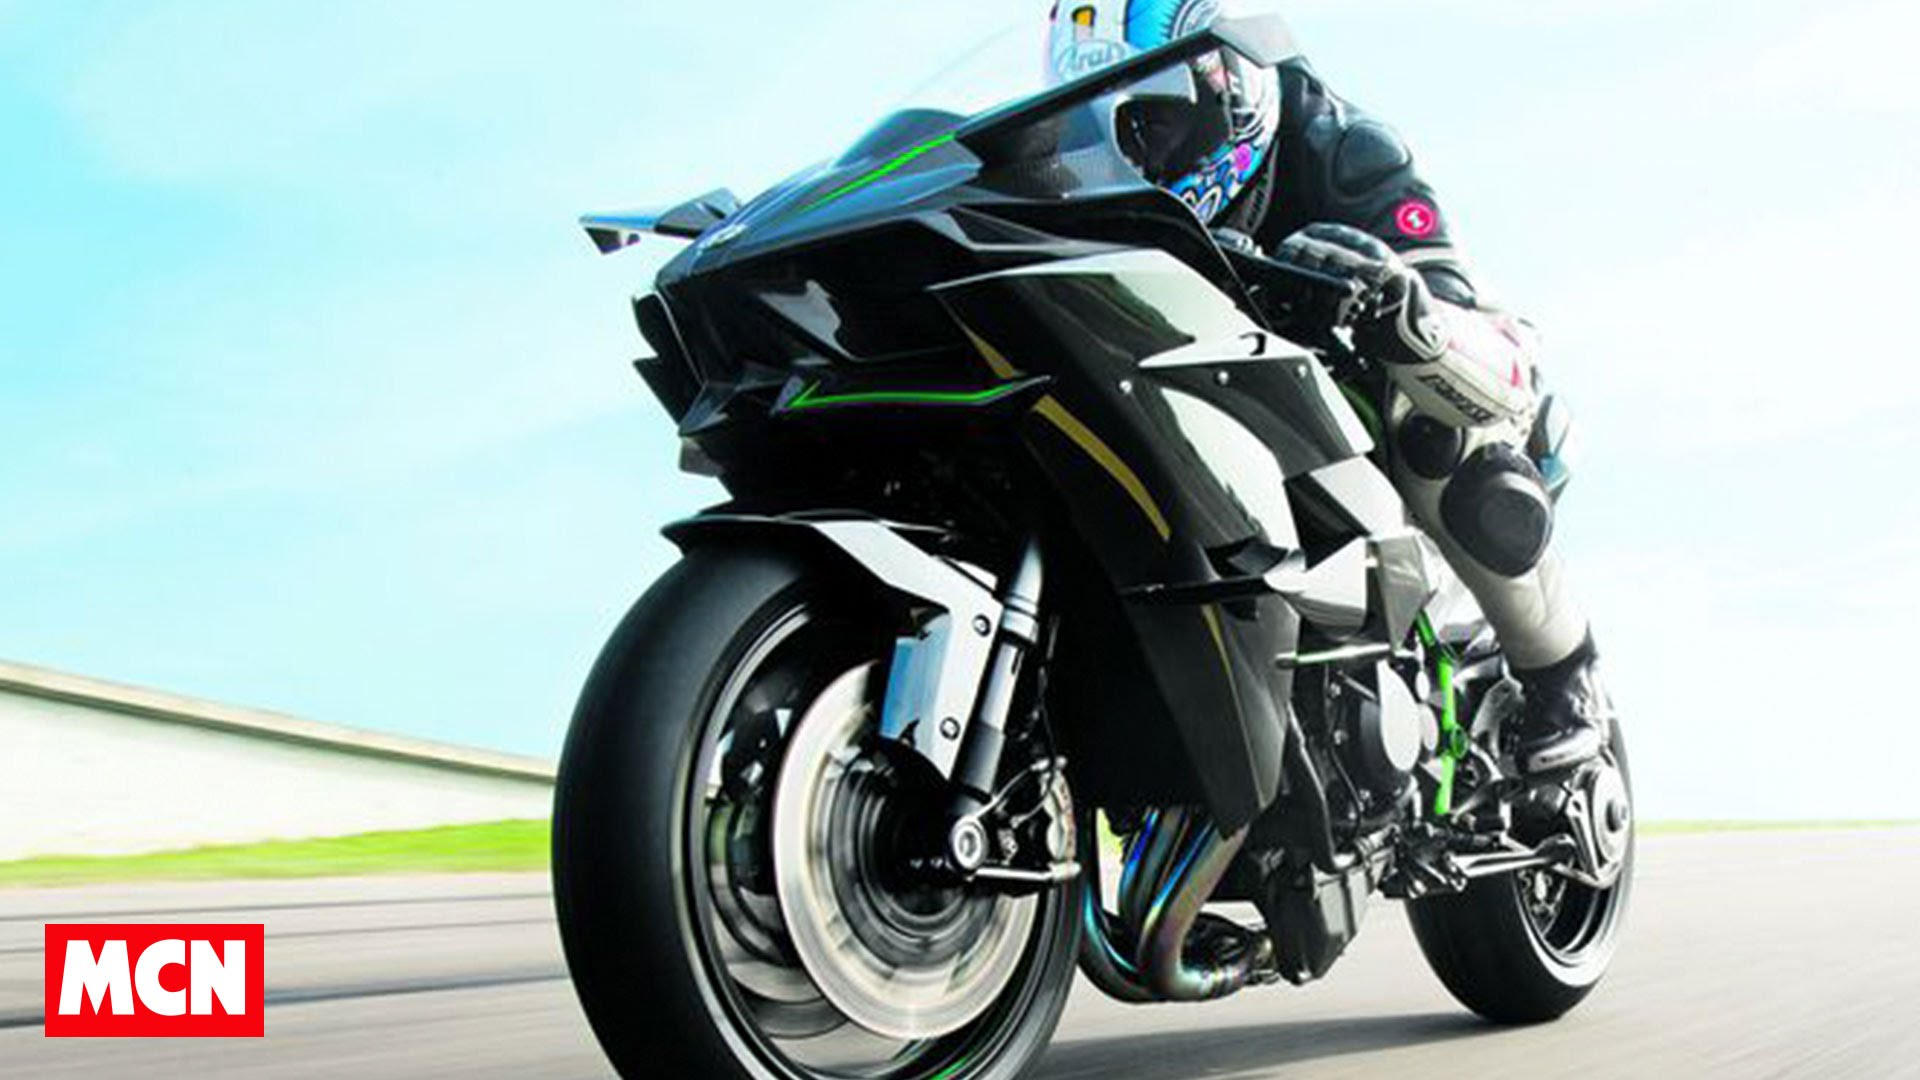 Kawasaki H2r For Sale >> The 250Hp Kawasaki H2R Is A Literal Demon On The Streets! - Legendary Motorcycles